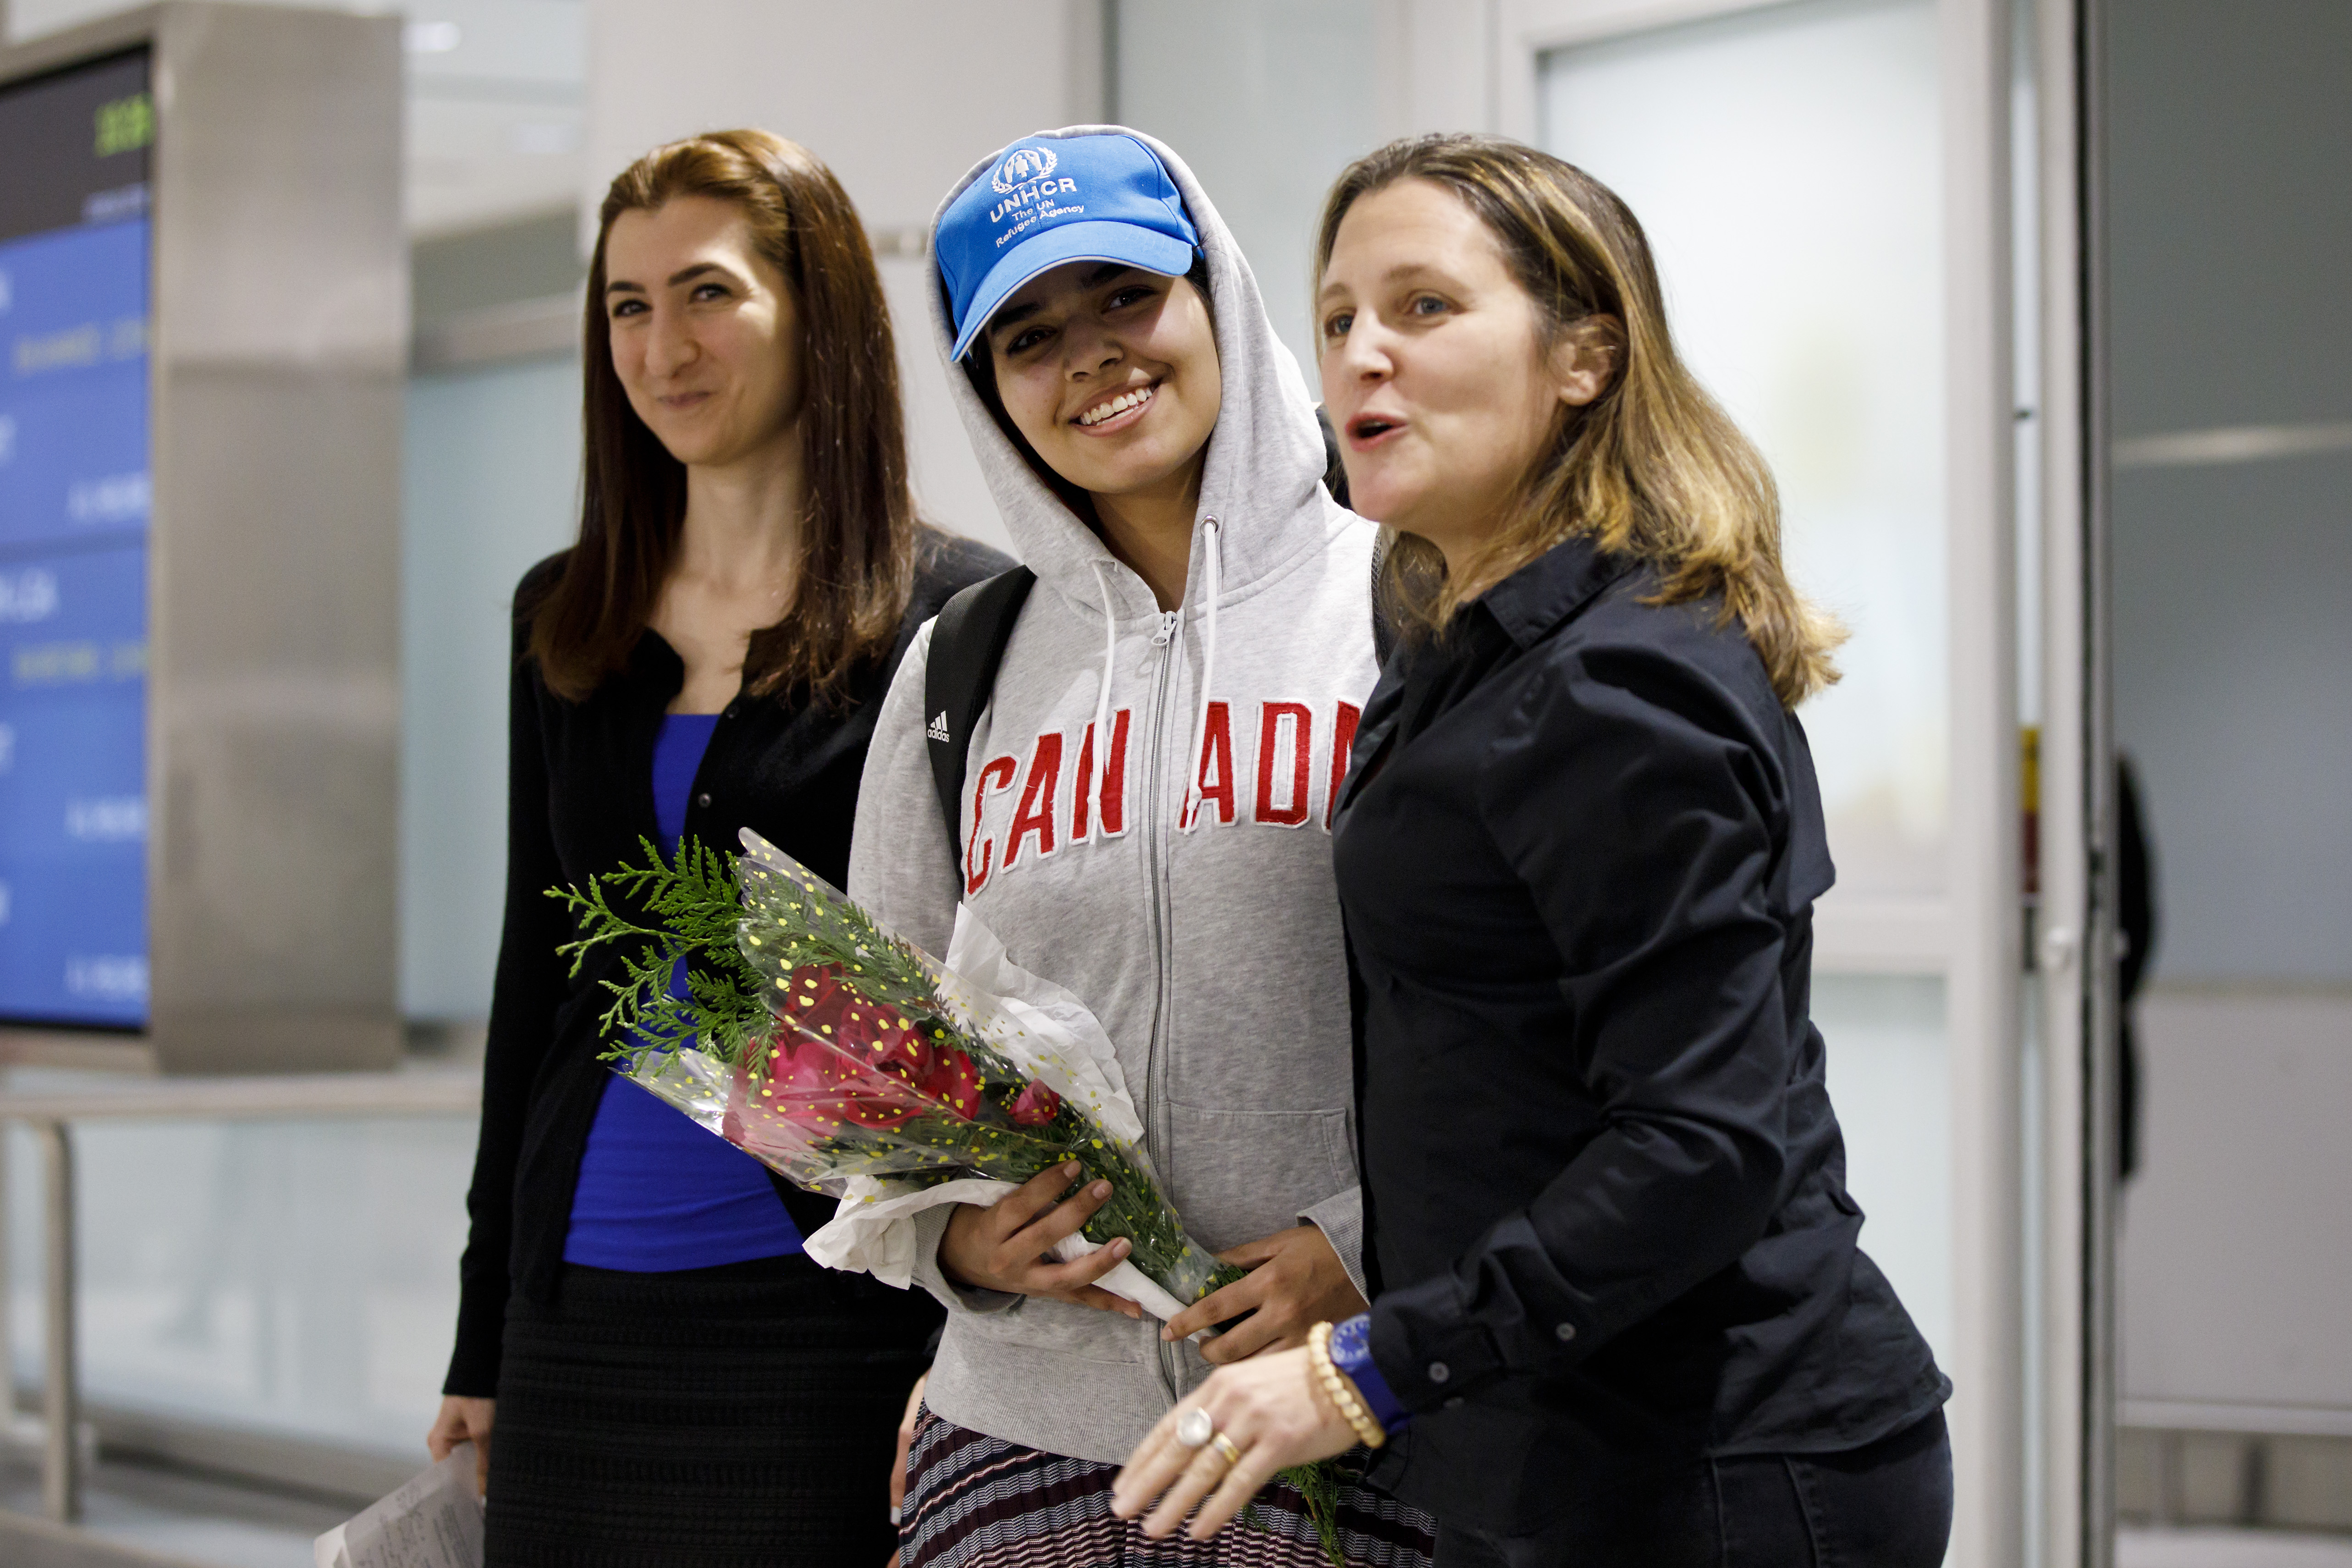 Asylum Seeker Rahaf Mohammed al-Qunun, 18, smiles as she is introduced to the media at Toronto Pearson International Airport, alongside Canadian minister of Foreign Affairs Chrystia Freeland, right, on January 12, 2019 in Toronto, Canada. (Getty Images)